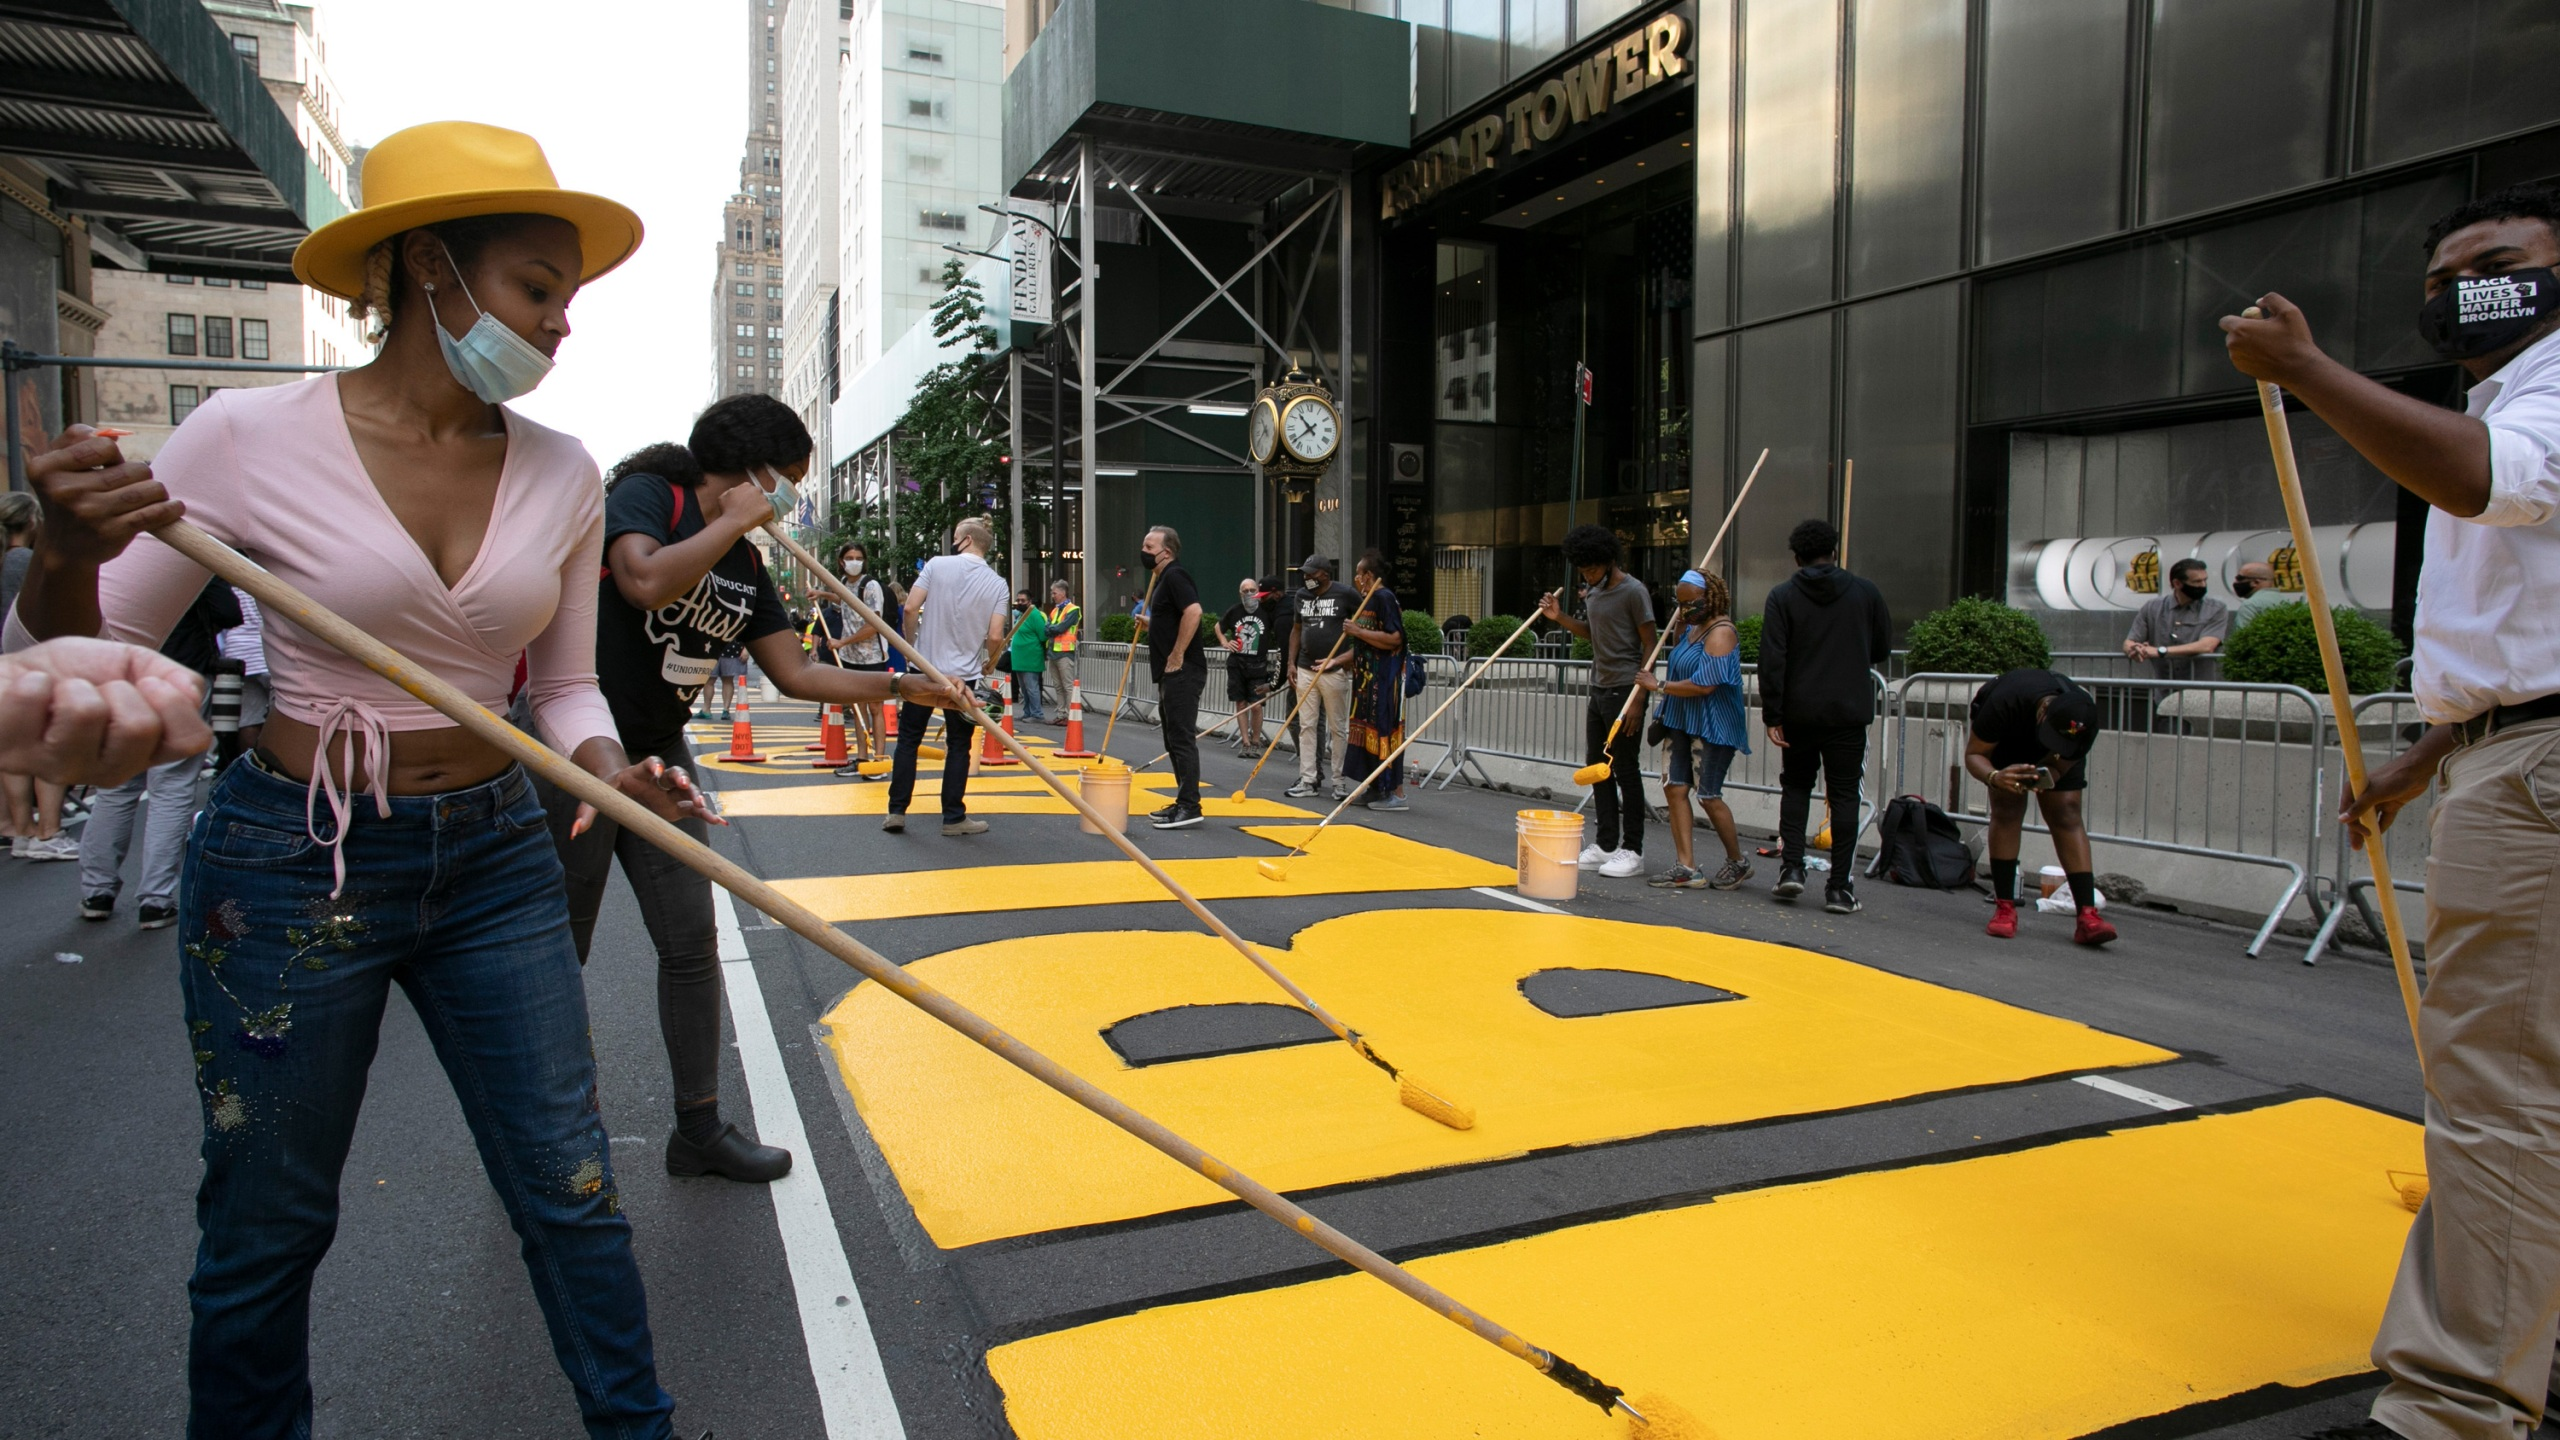 Azia Toussaint, left, participates in the painting of Black Lives Matter on Fifth Avenue in front of Trump Tower, Thursday, July 9, 2020, in New York. (AP Photo/Mark Lennihan)